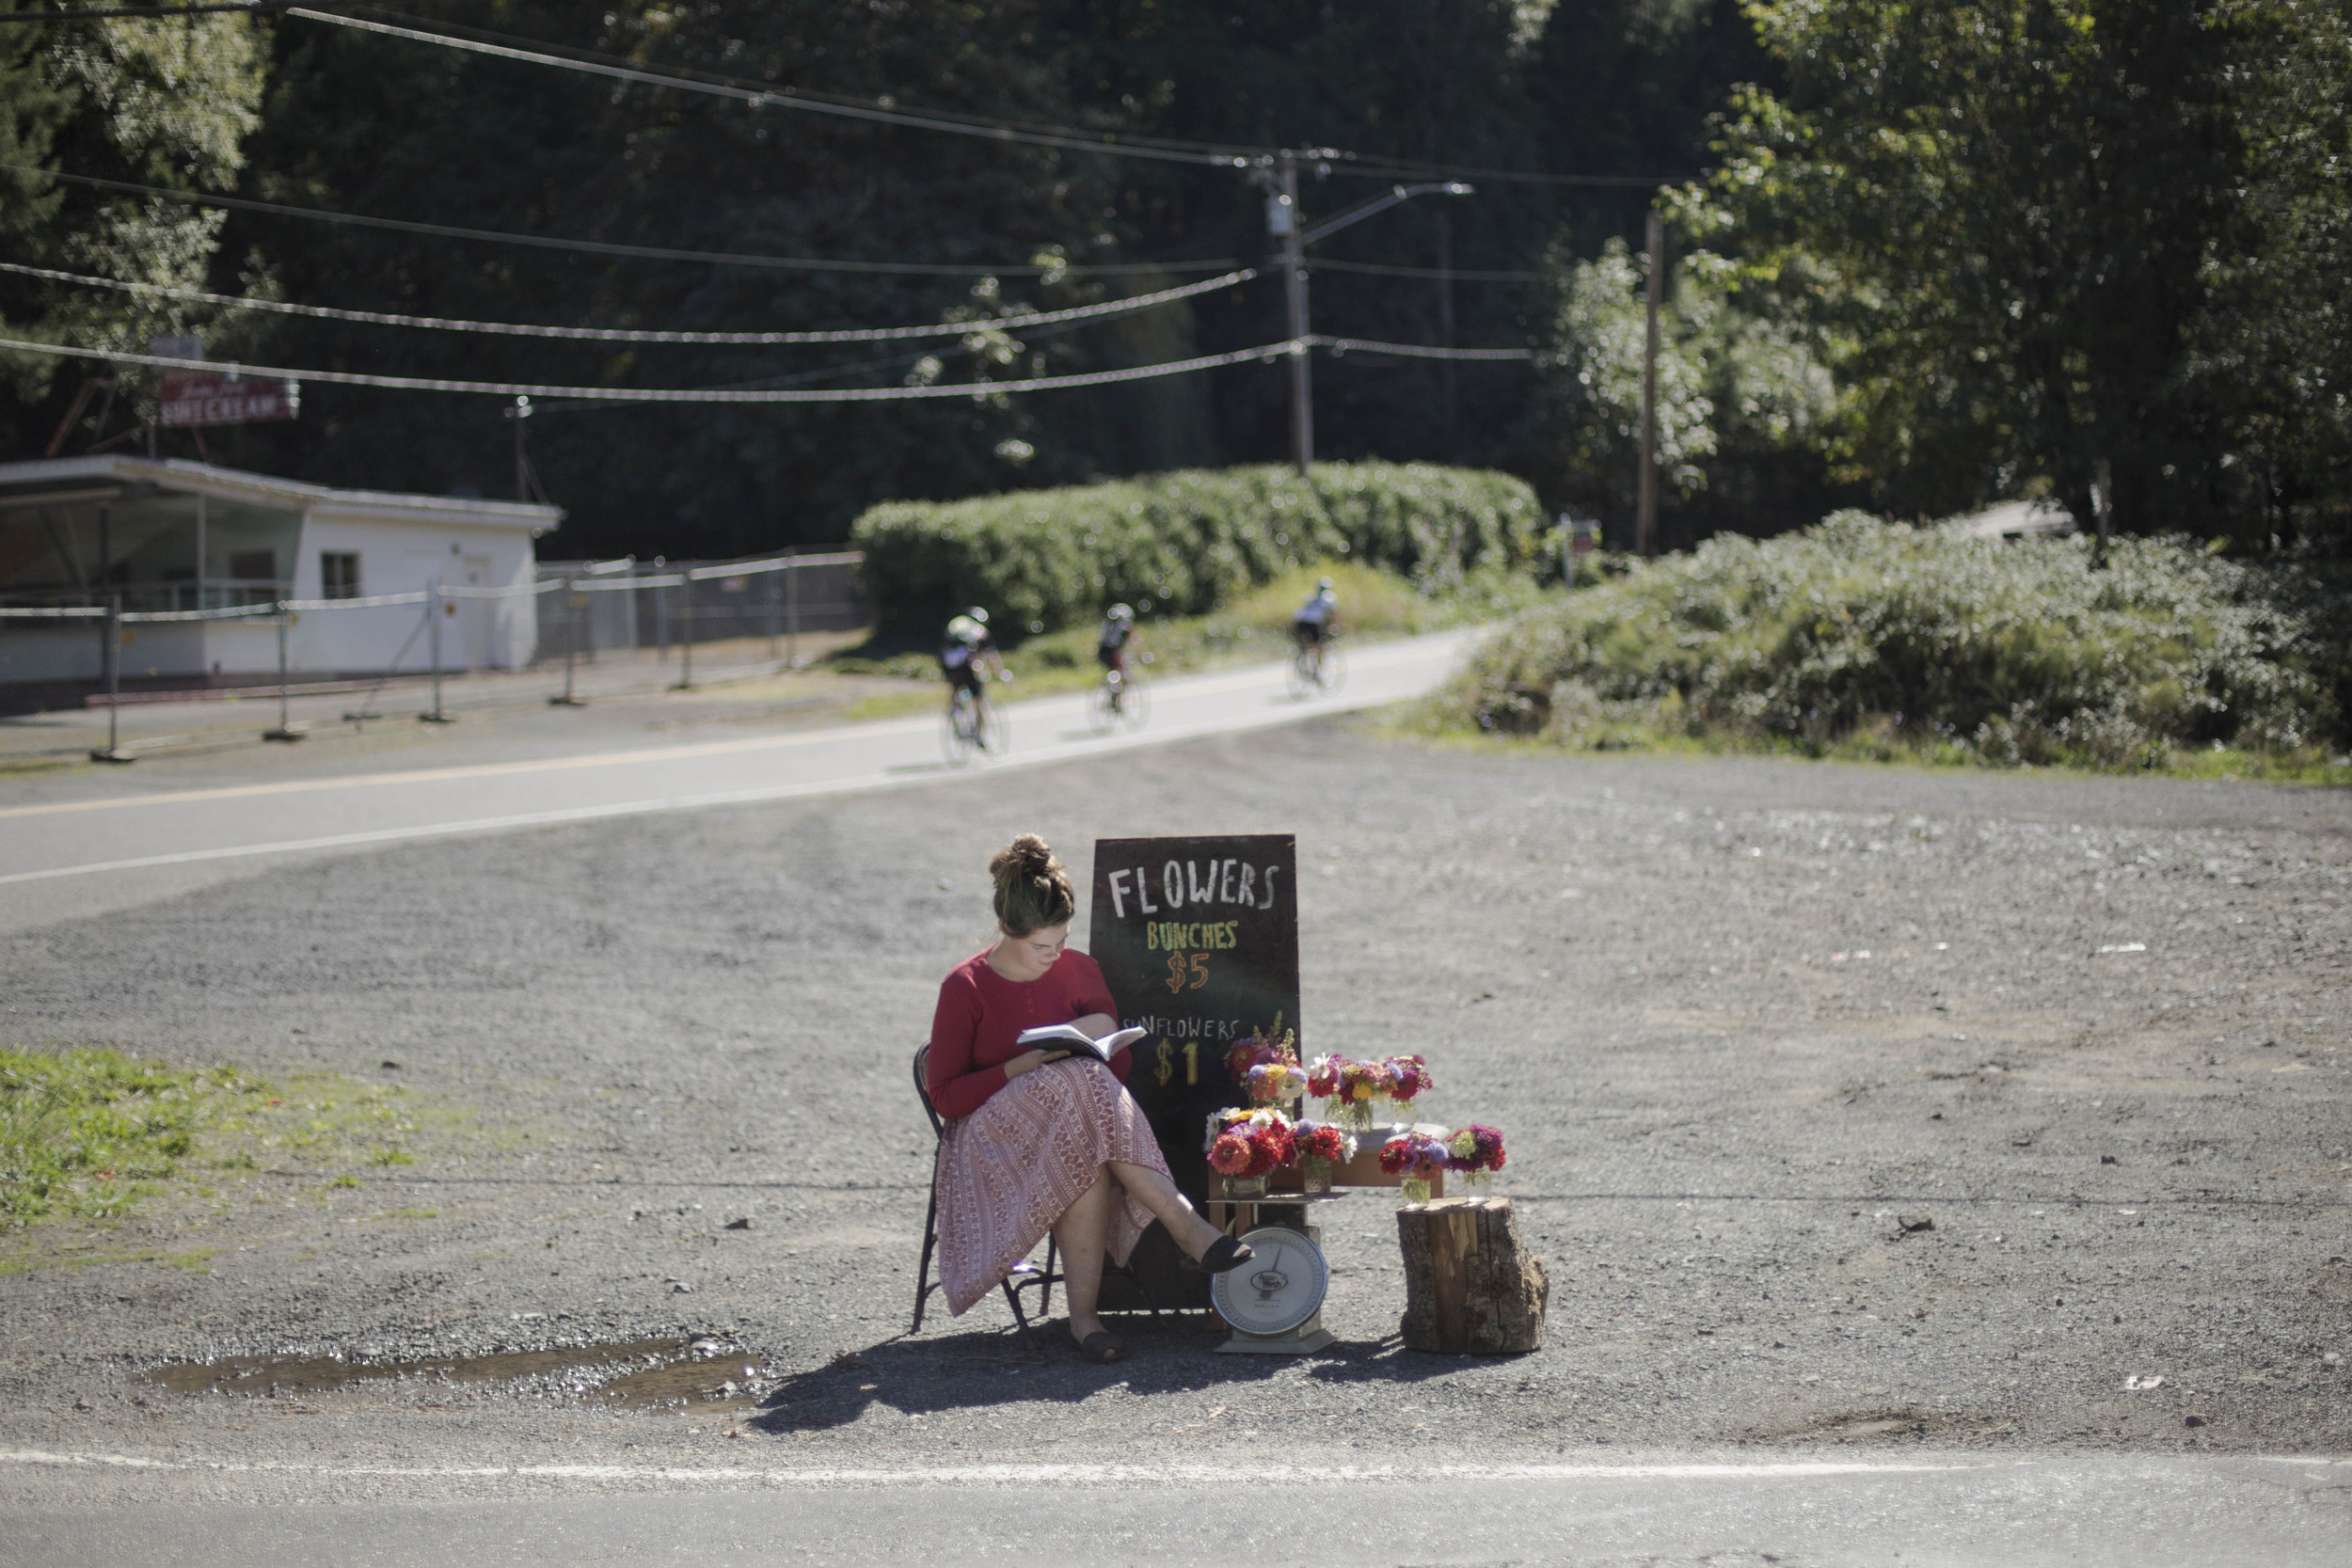 Flower farmer Aisling Aine Maye of Skyberry Farm selling her flowers on the side of the road after a morning of harvesting. (Oregon)